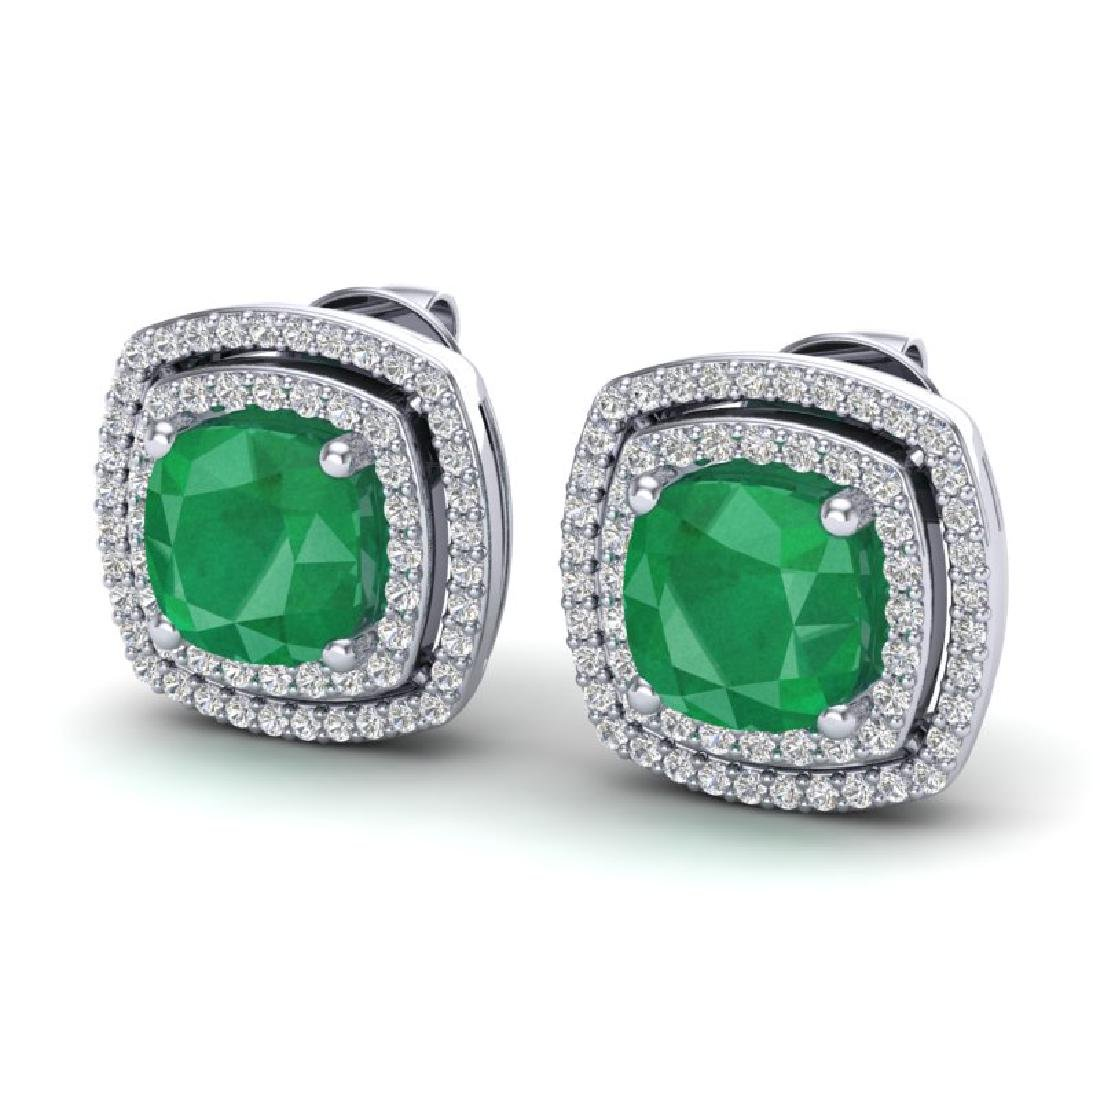 4.95 CTW Emerald & Micro Pave VS/SI Diamond Halo